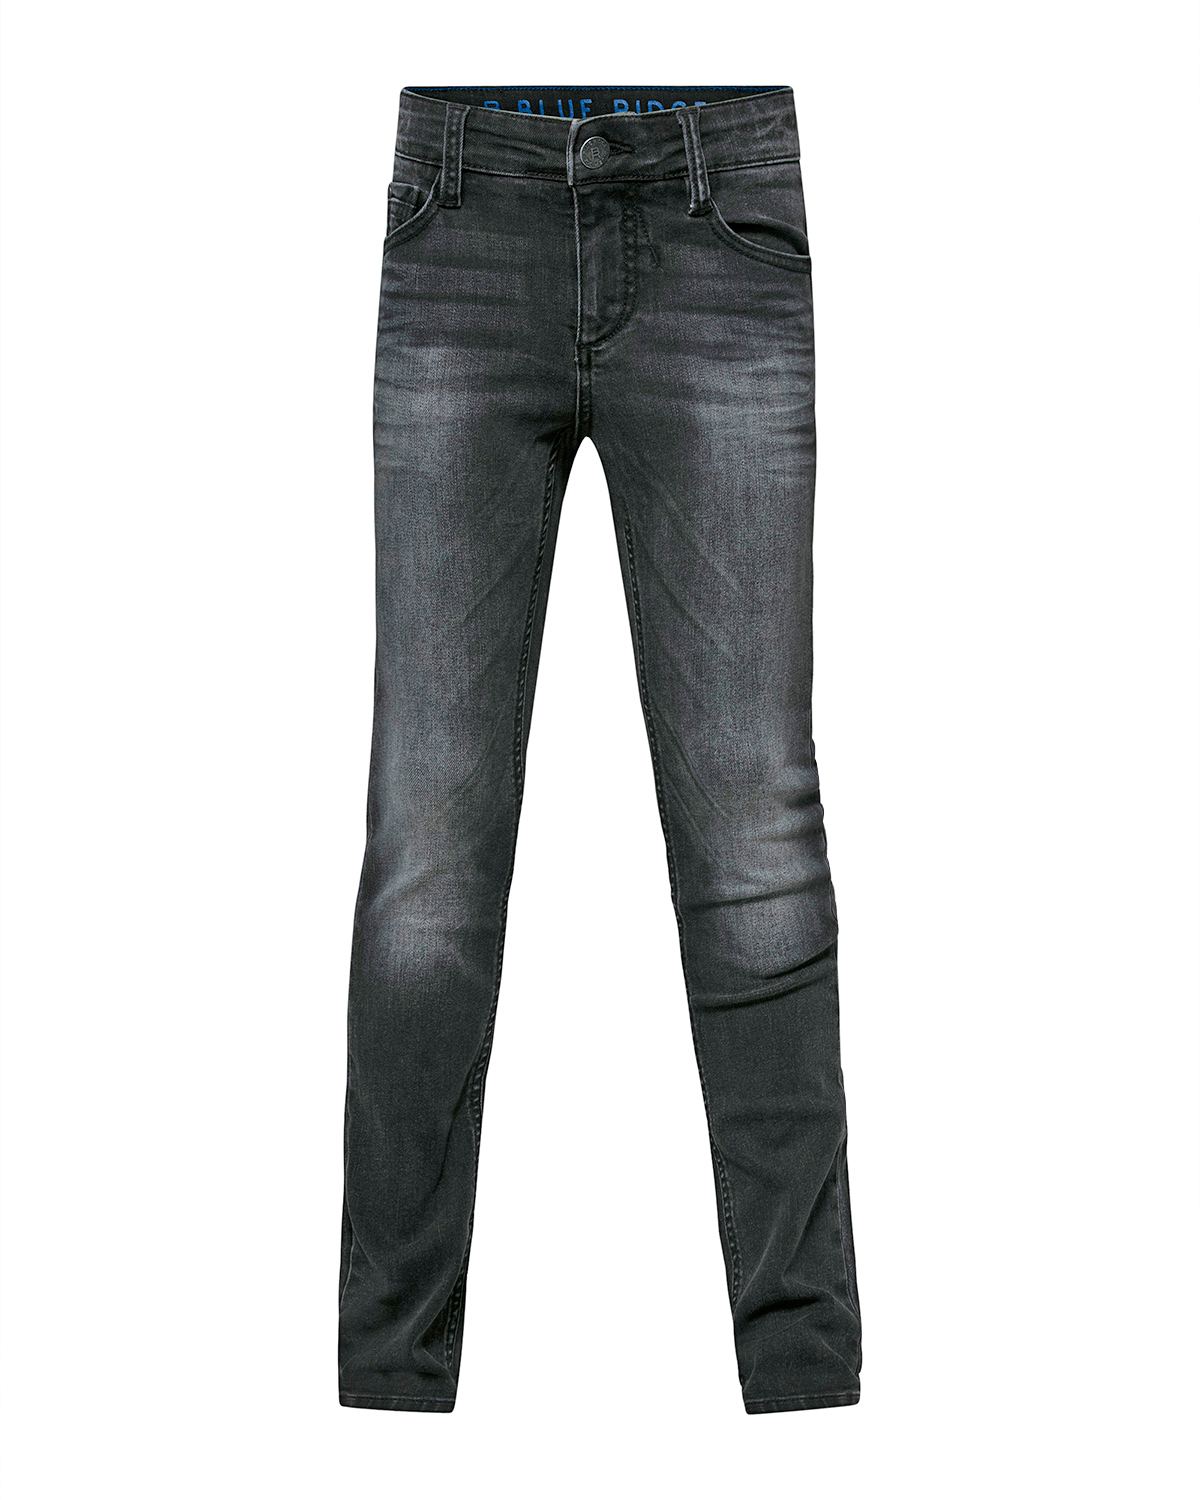 Jongens super skinny black denim jeans